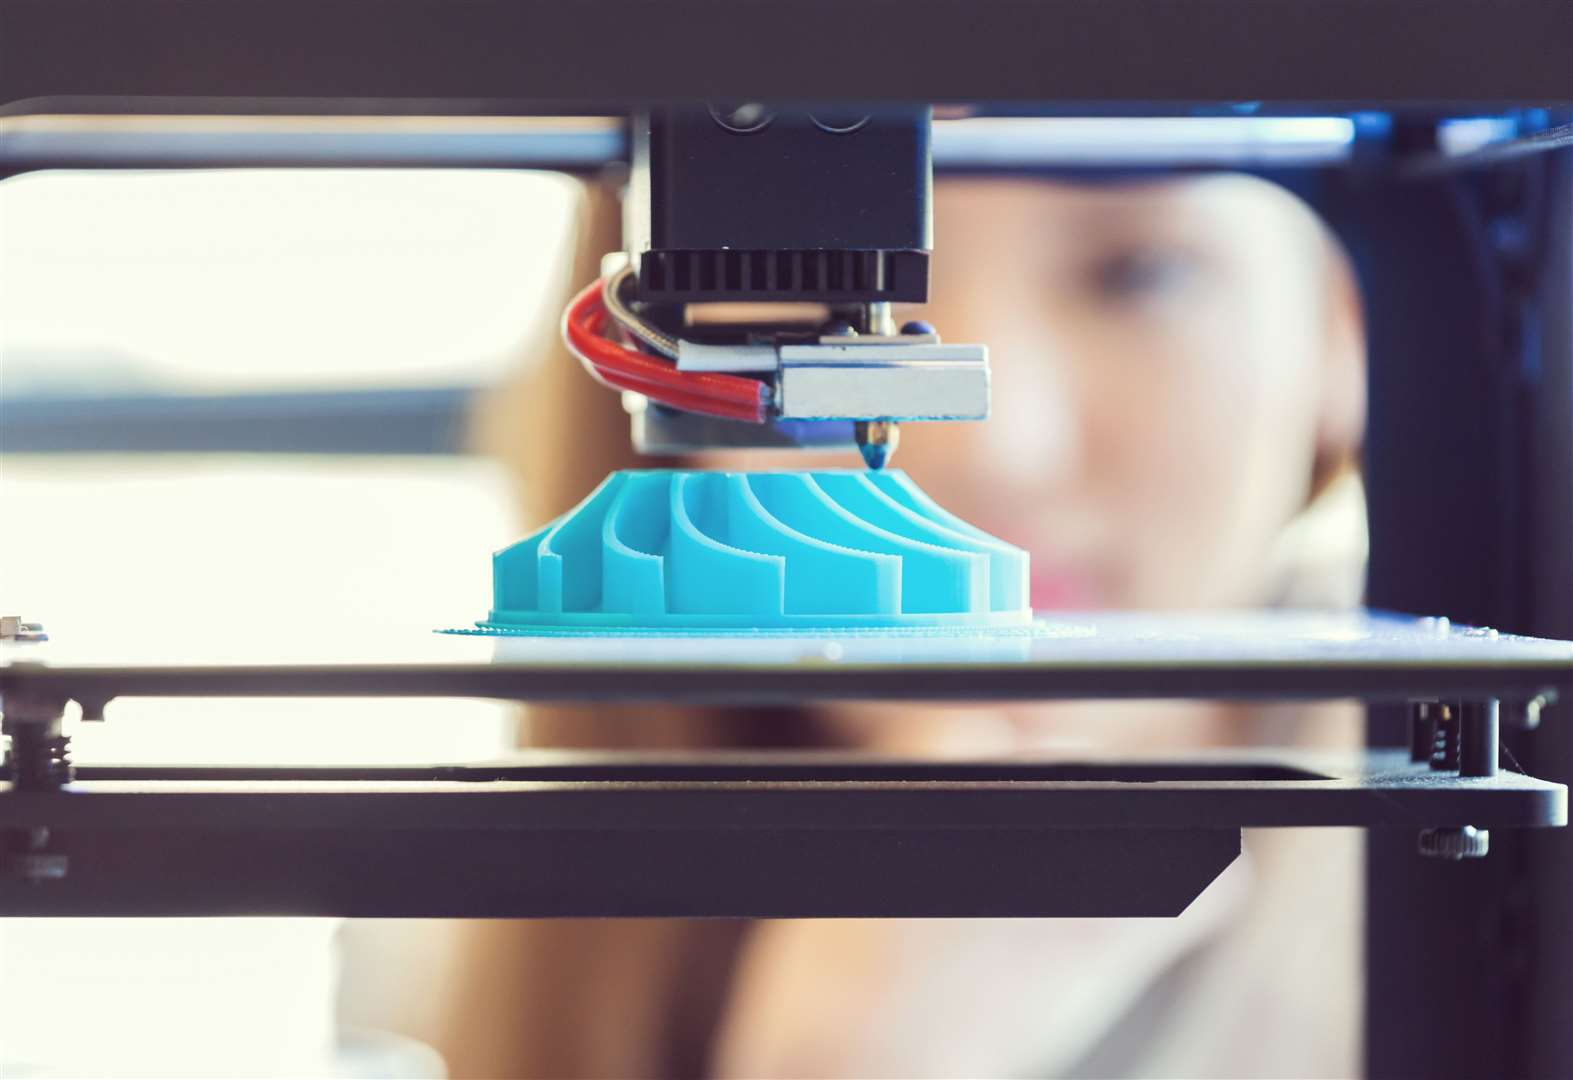 5 things to know before starting a 3D printer